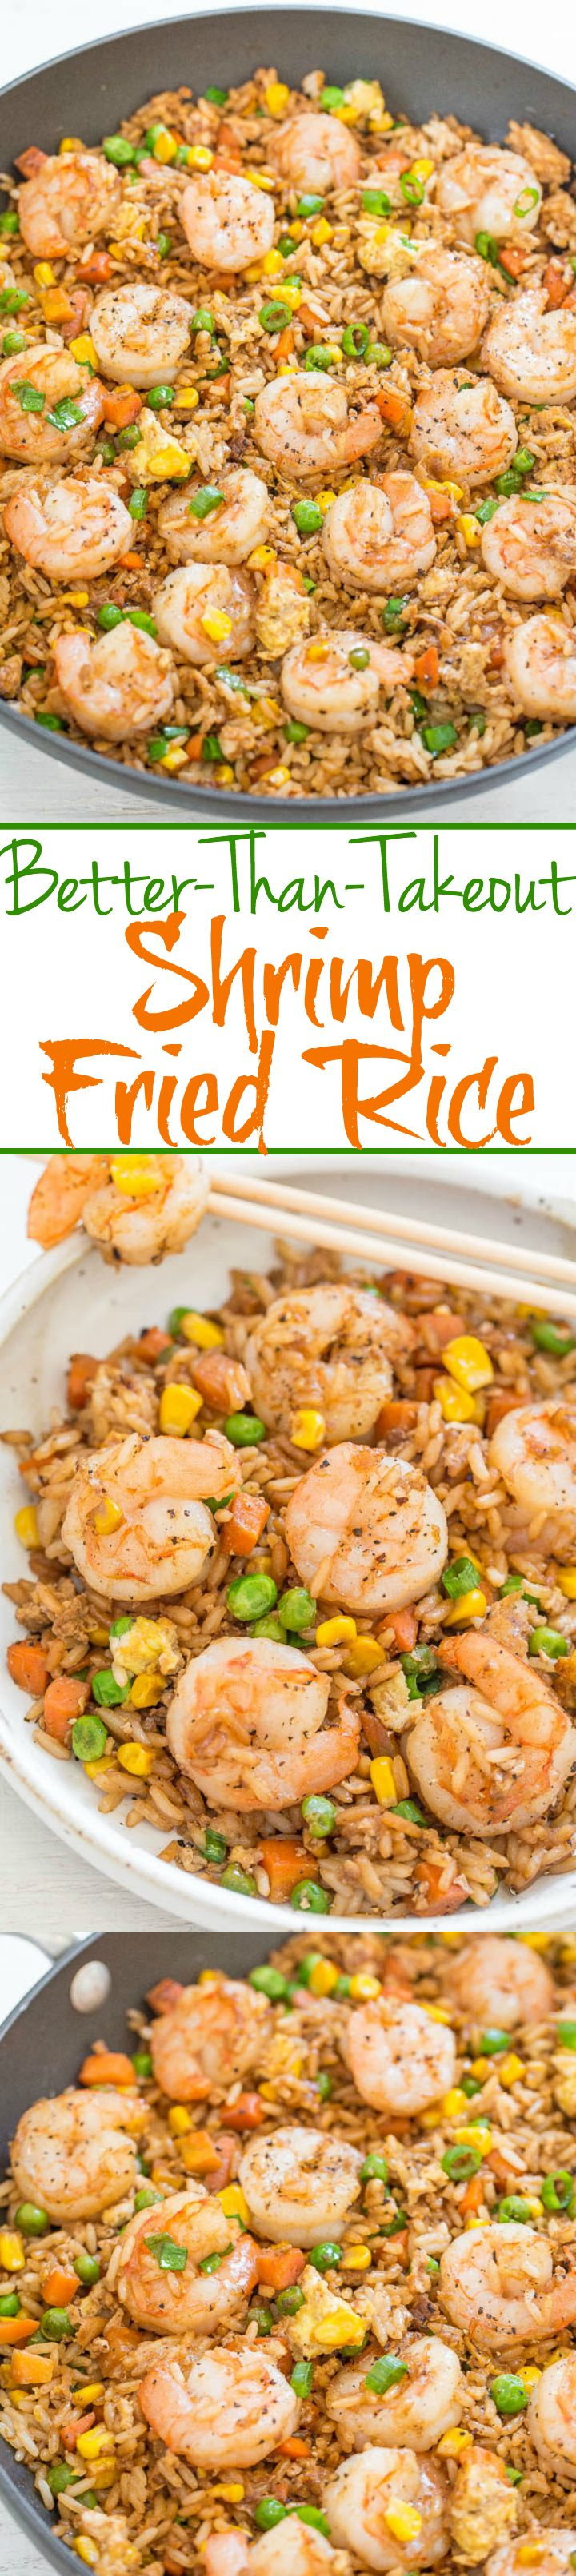 One of the most popular posts on my site the past year has been my easy better than takeout shrimp fried rice one skillet ready in 20 minutes and youll never takeout again homemade tastes way better tons more flavor ccuart Image collections